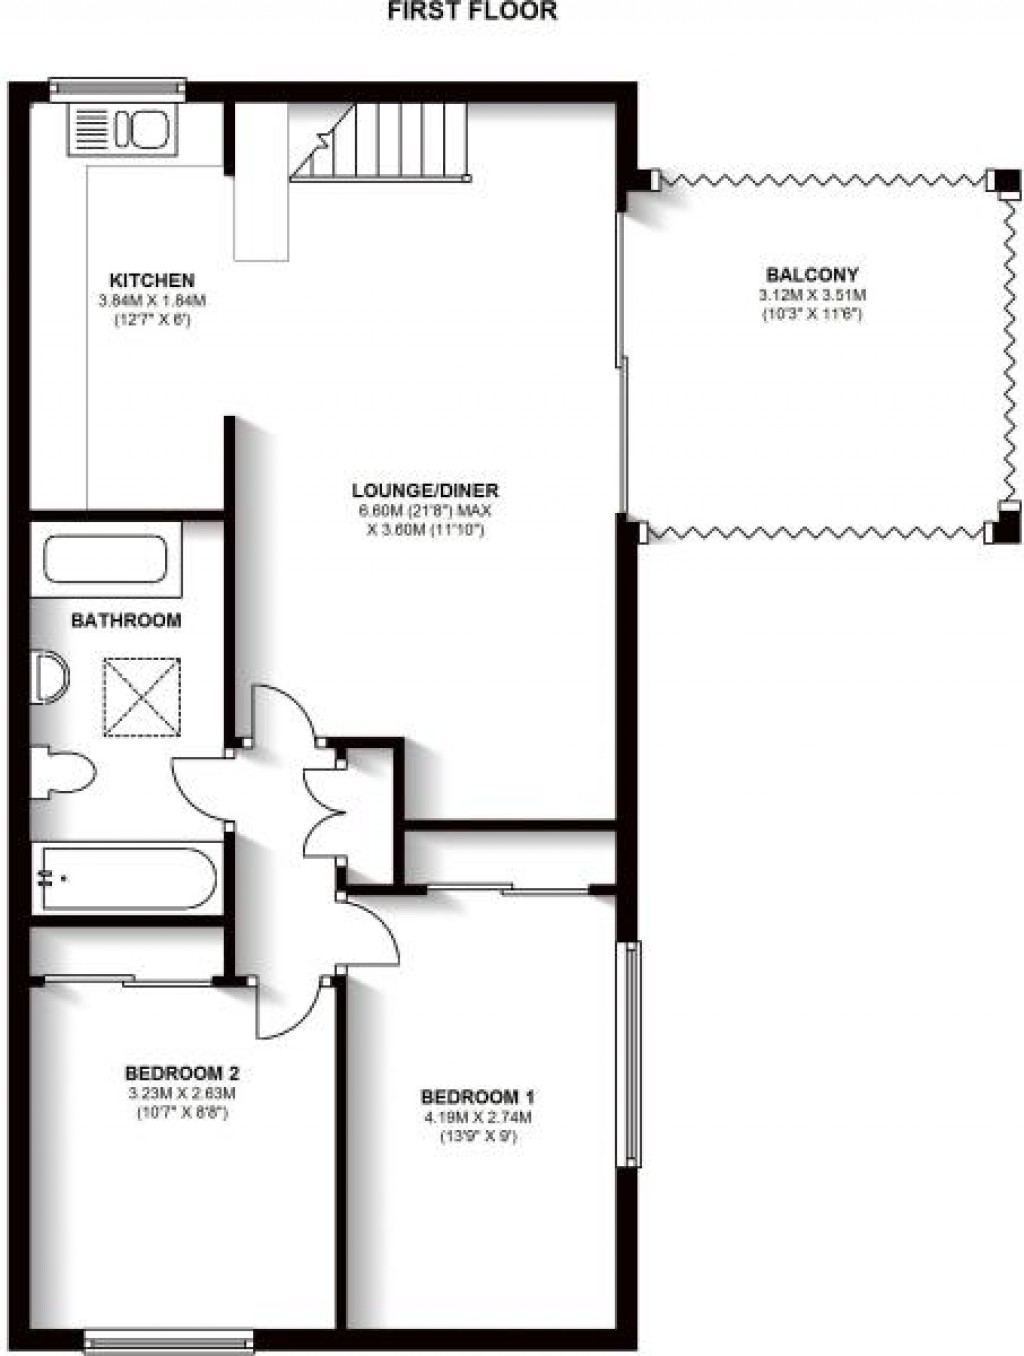 Floorplans For Markham Court, Regency Walk, Croydon